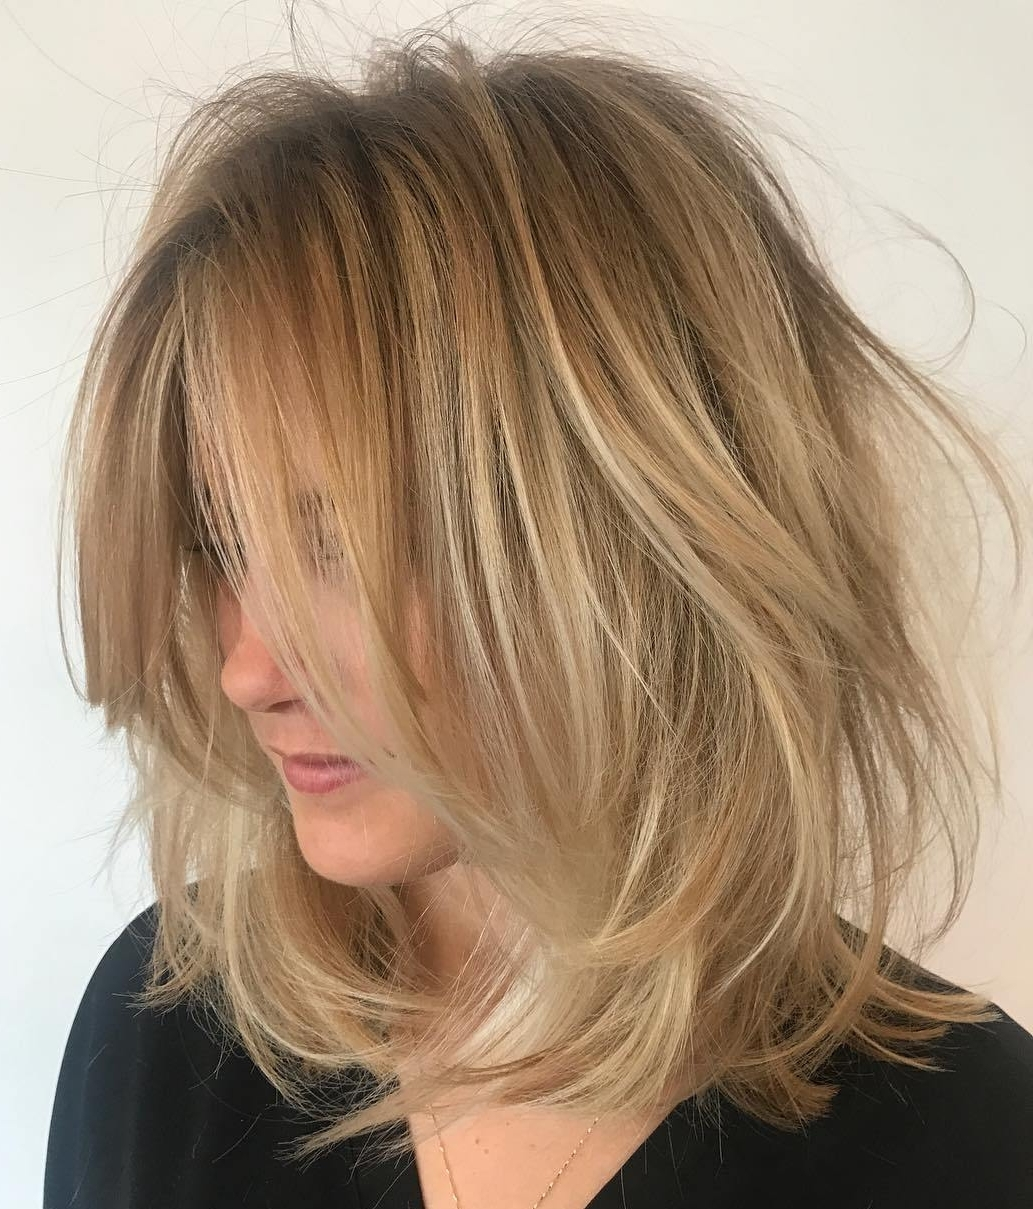 70 Devastatingly Cool Haircuts For Thin Hair Pertaining To Favorite Inverted Blonde Bob For Thin Hair (View 4 of 20)